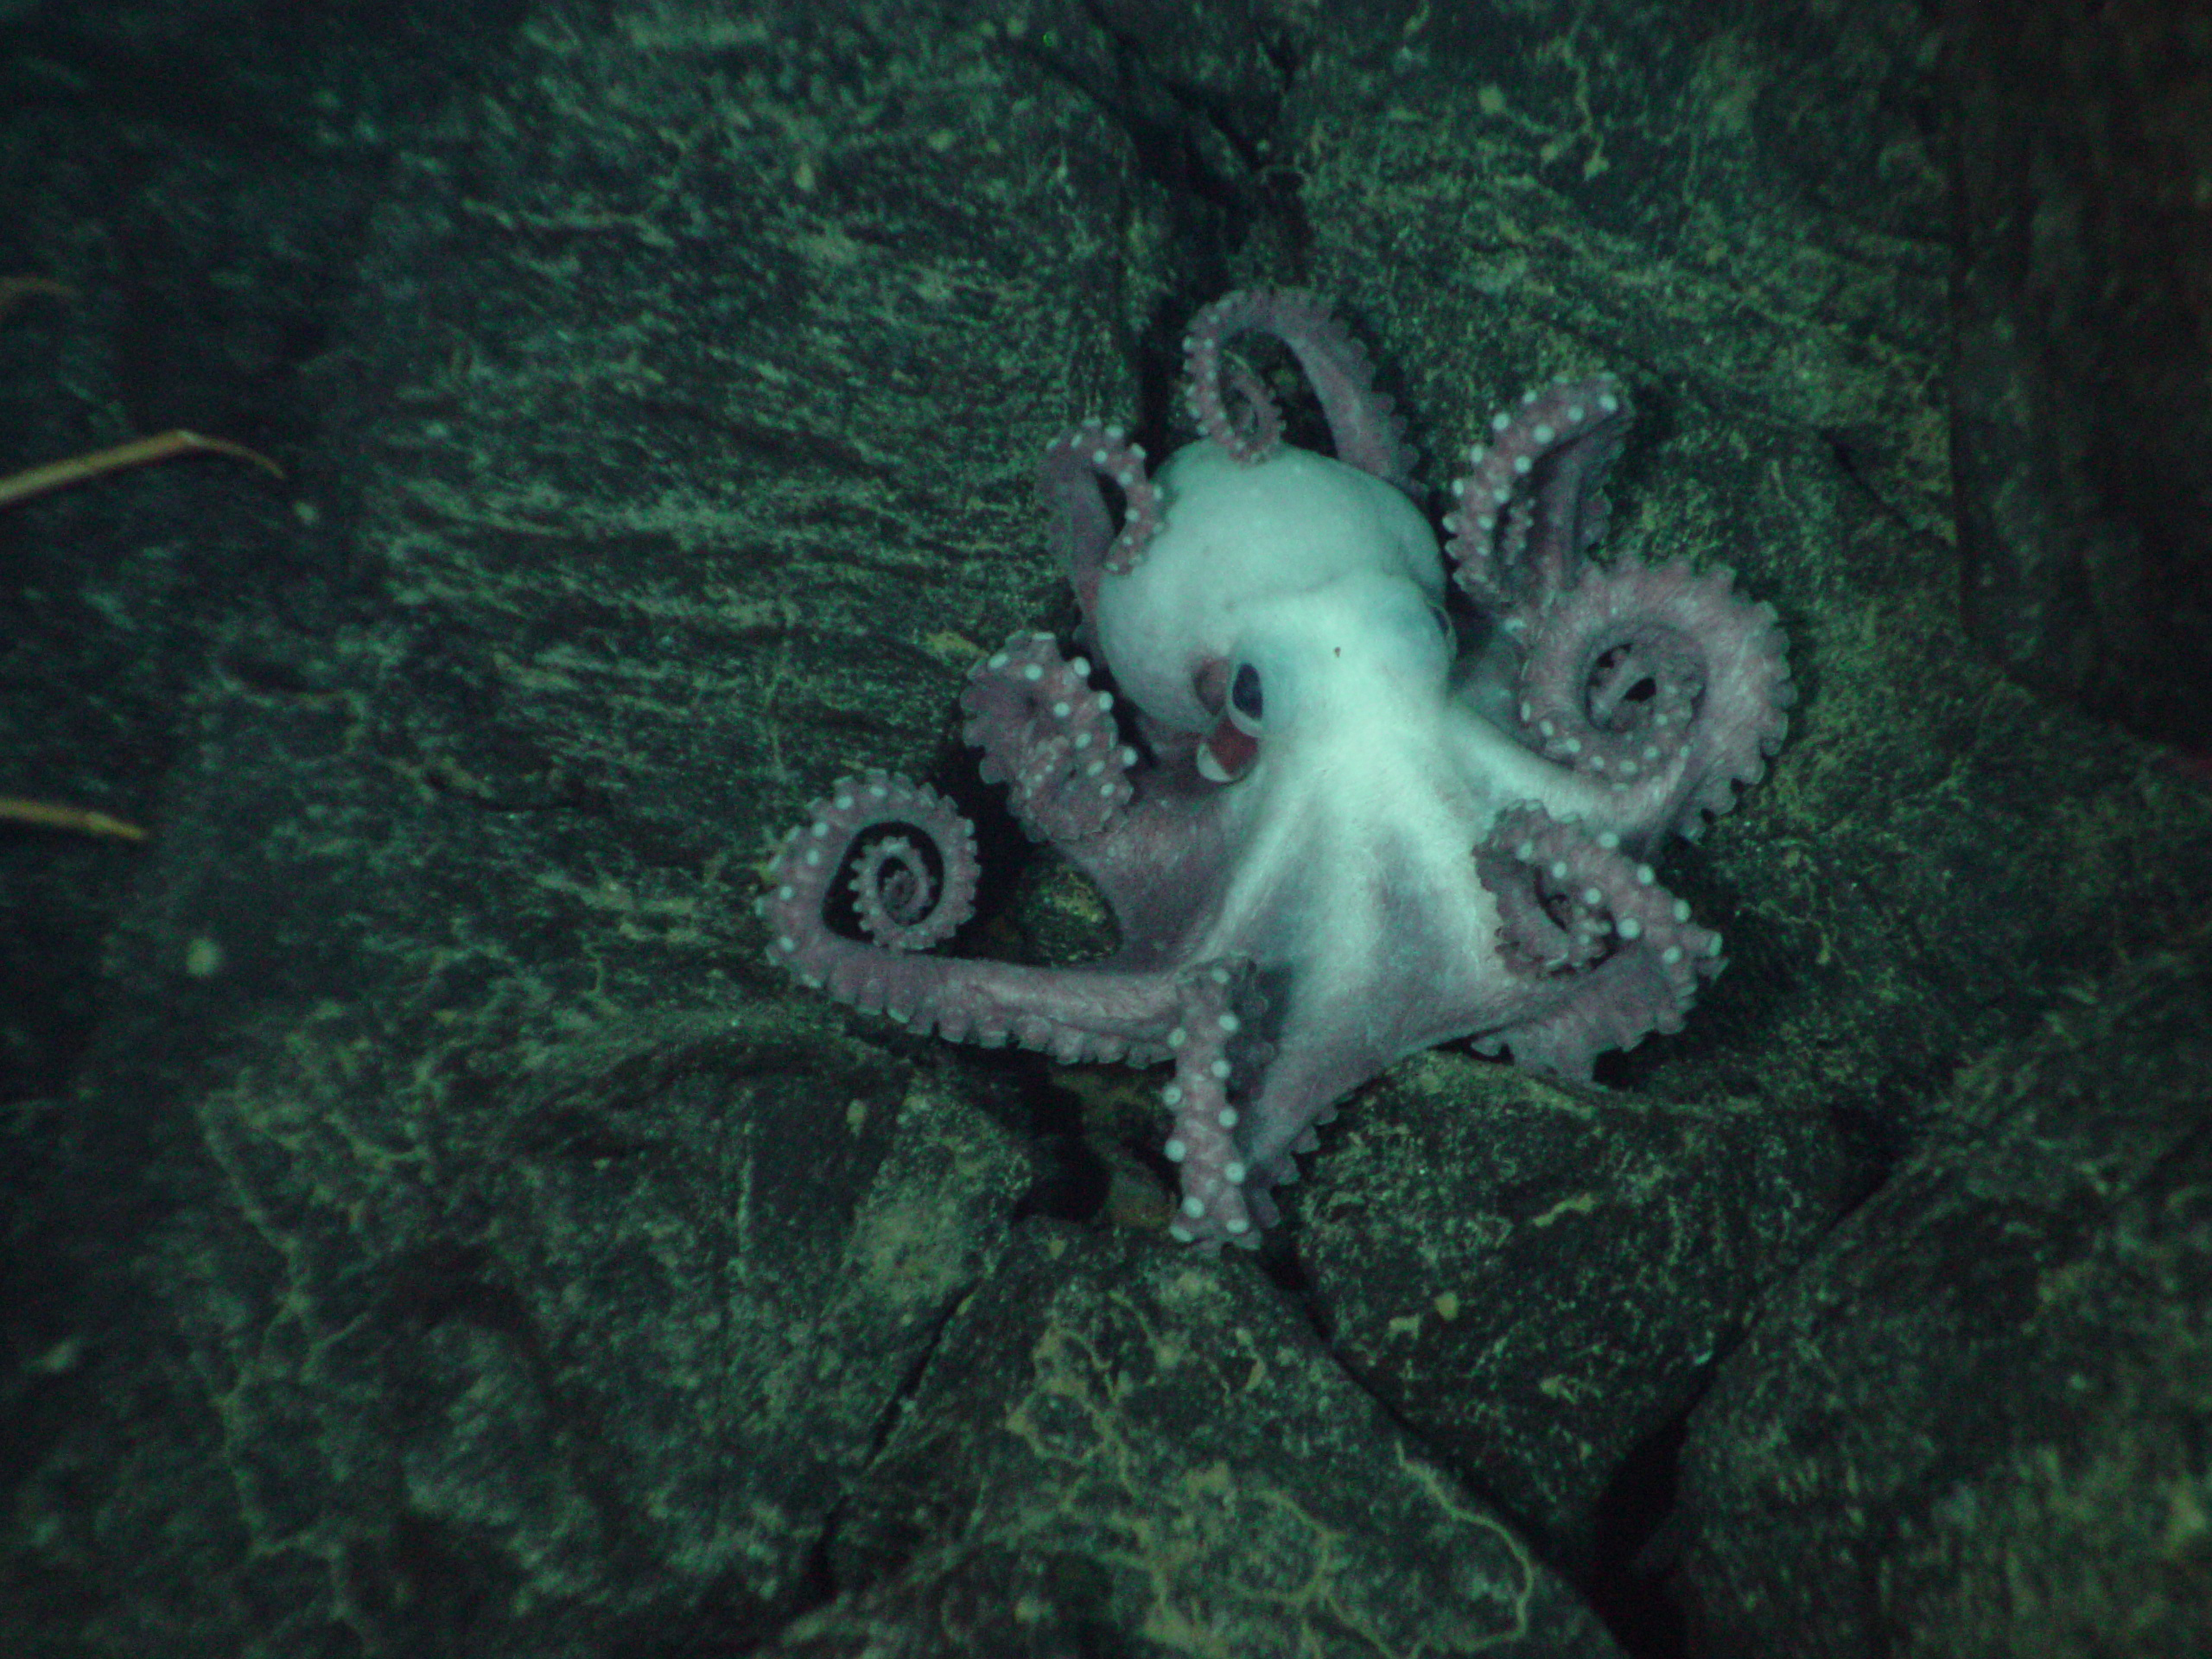 this octopus was spotted on the side of a fault scarp during a geologic traverse on